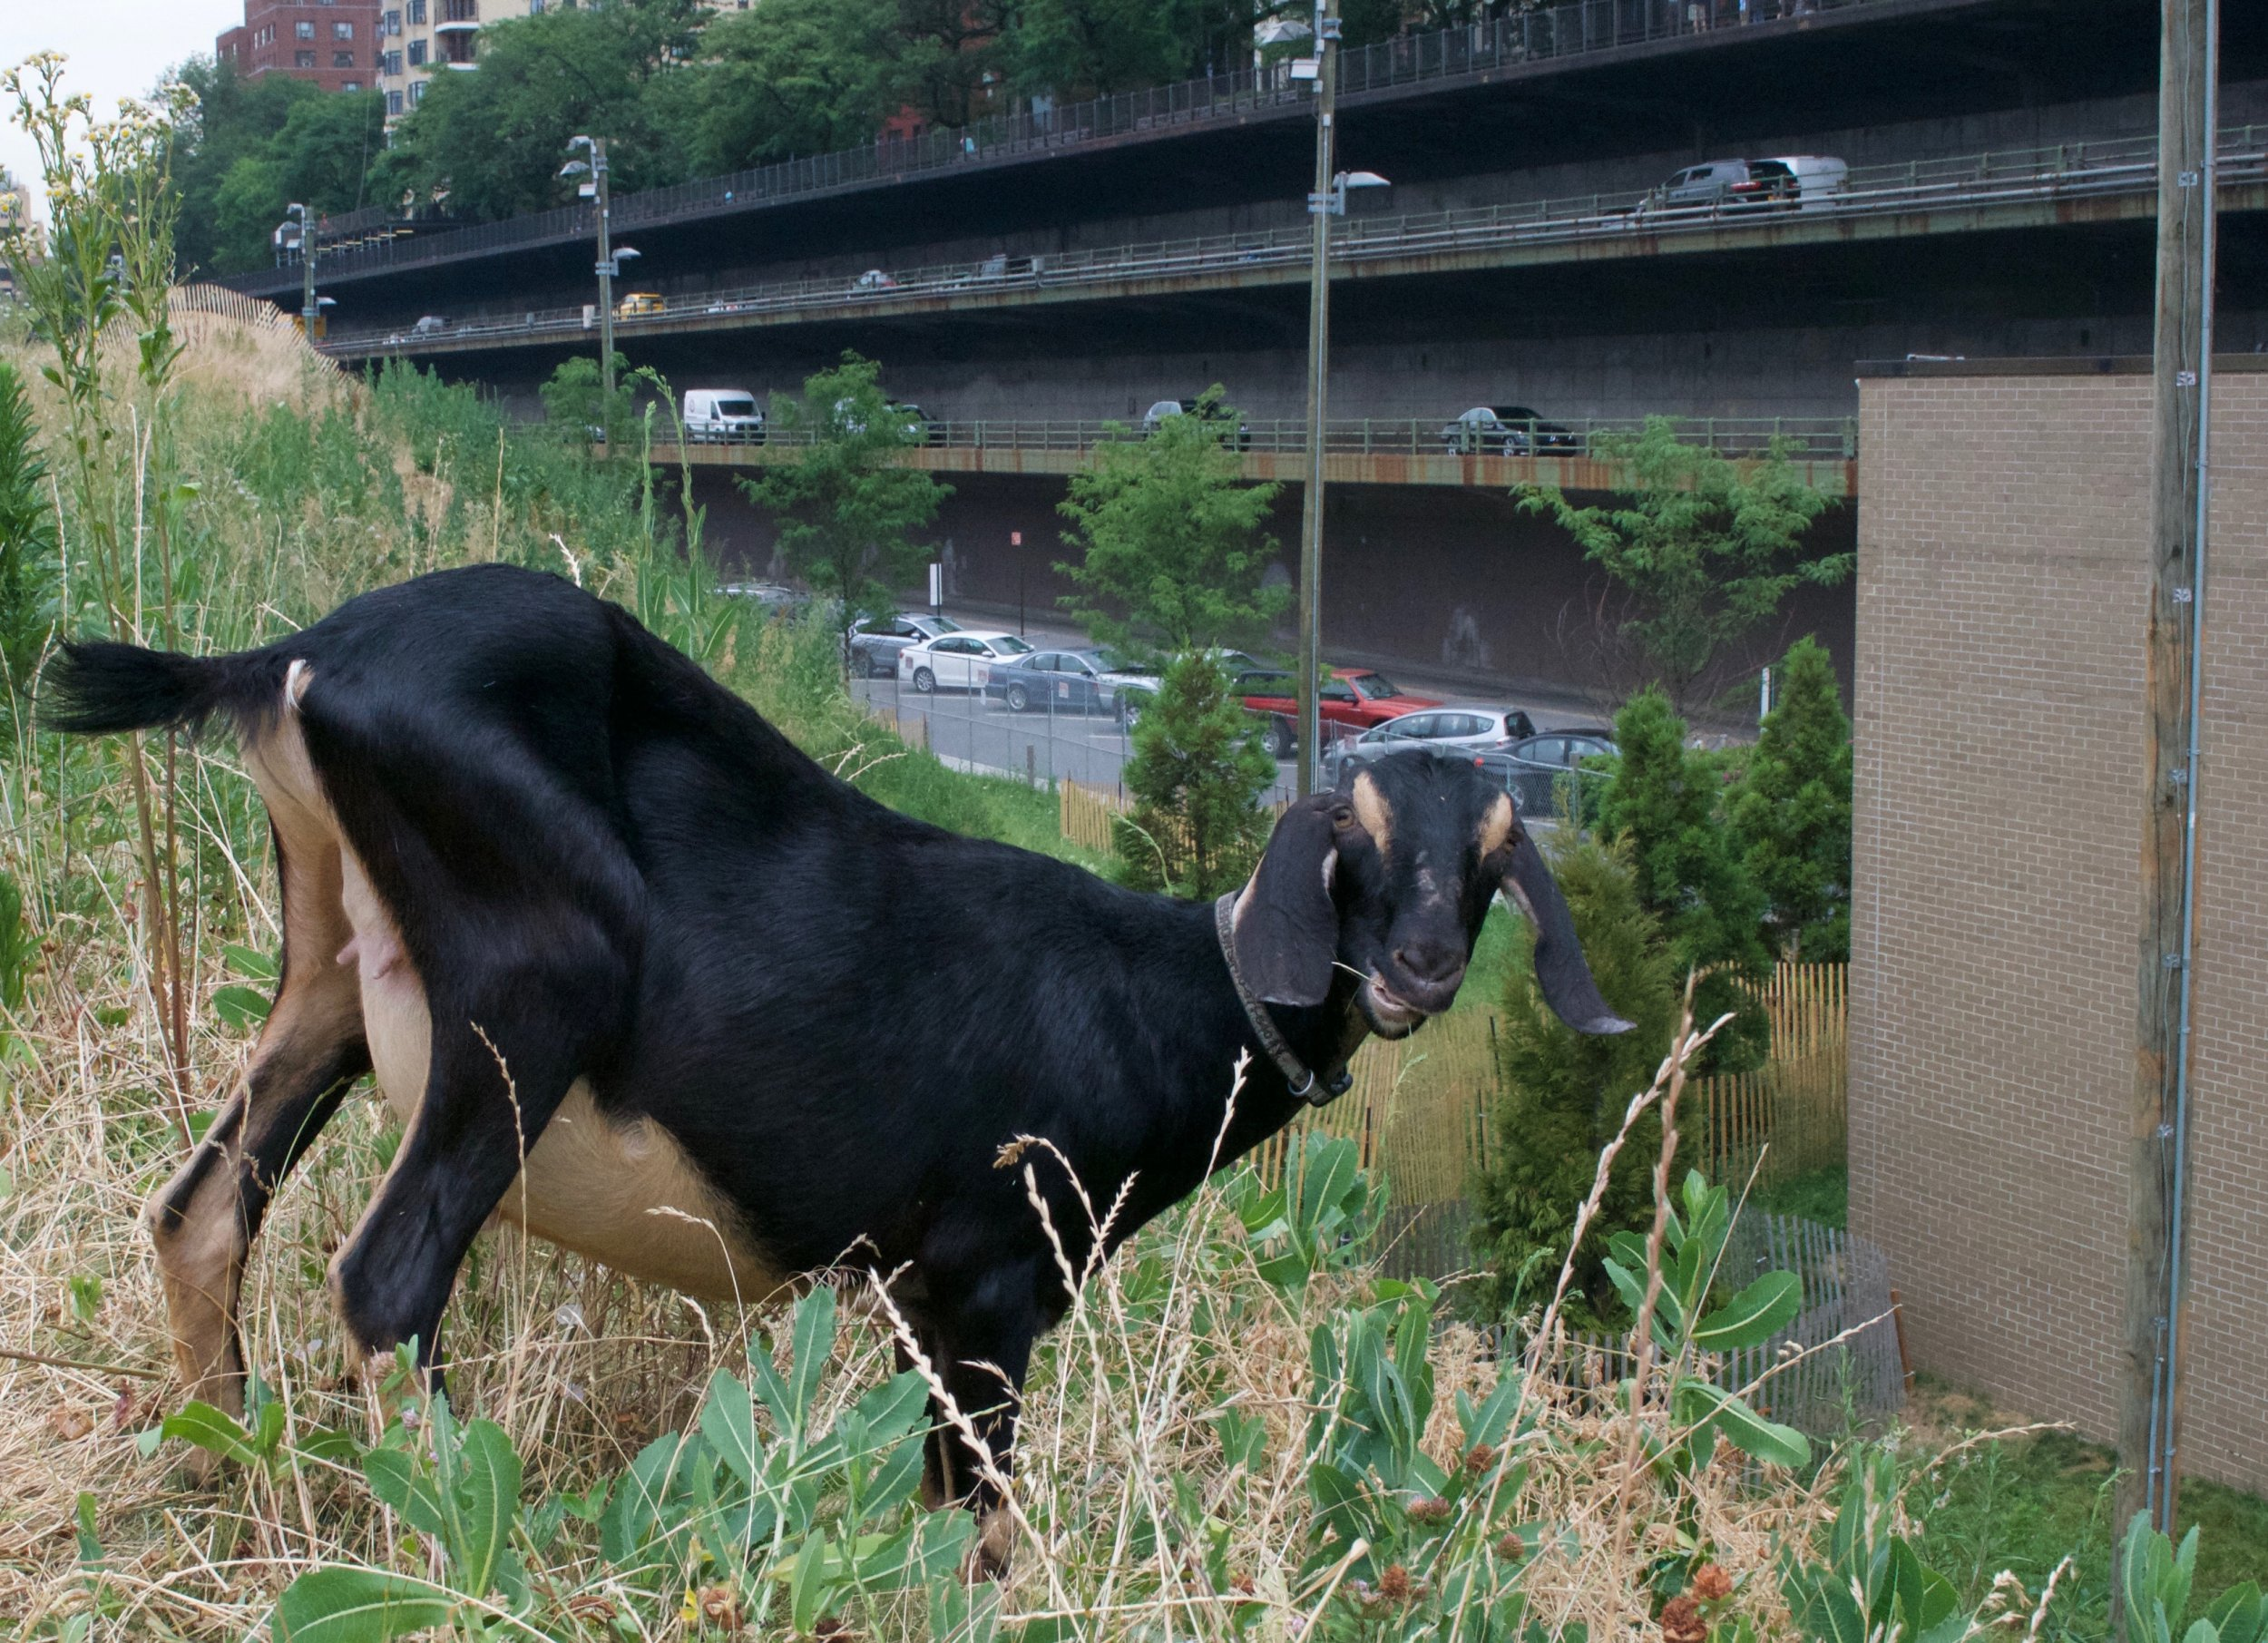 goats_brooklyn_0624_01